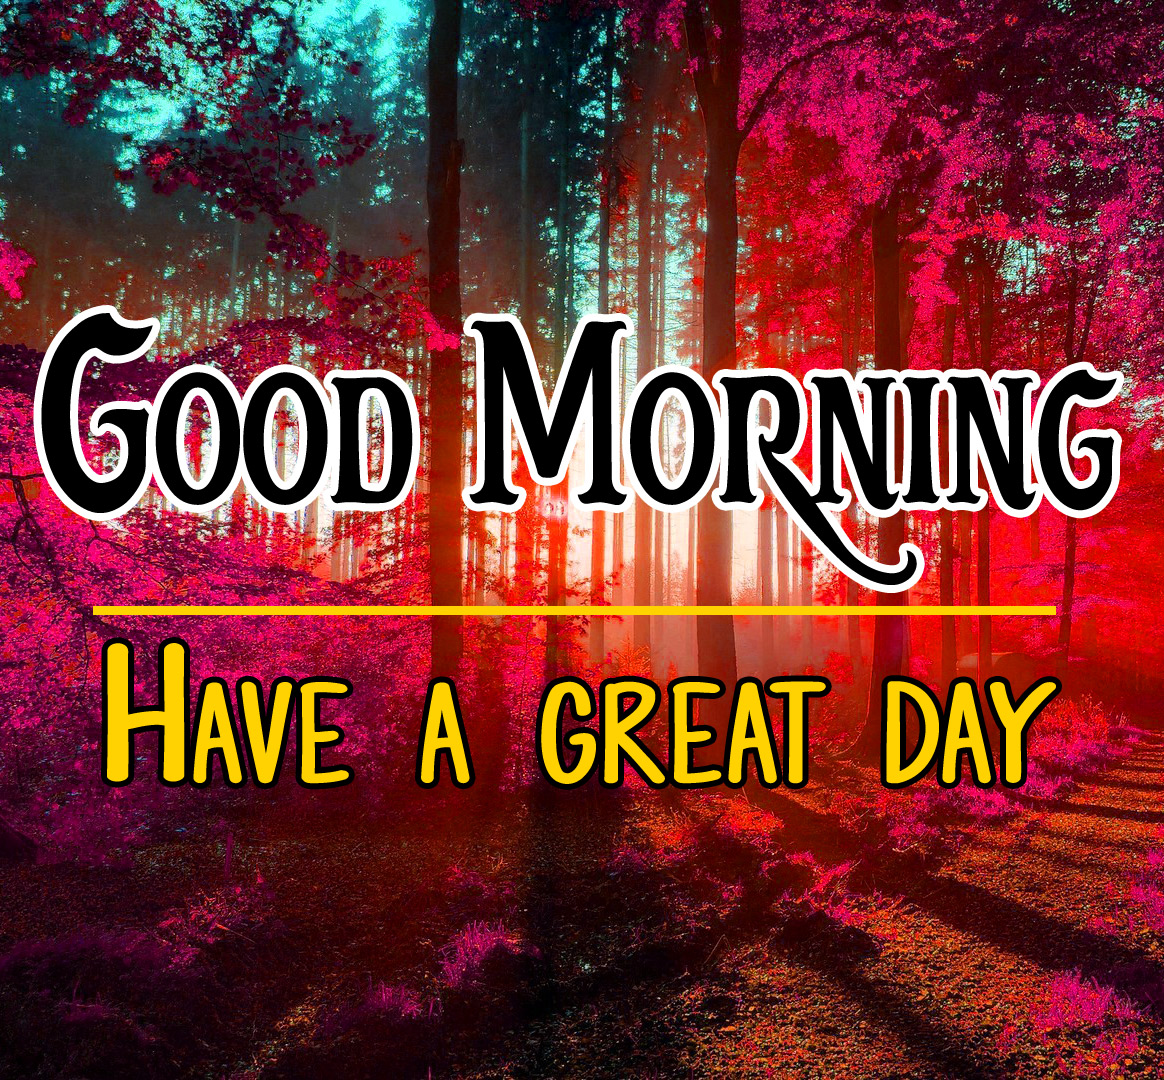 Good Morning Images Wallpaper Pics Download Free